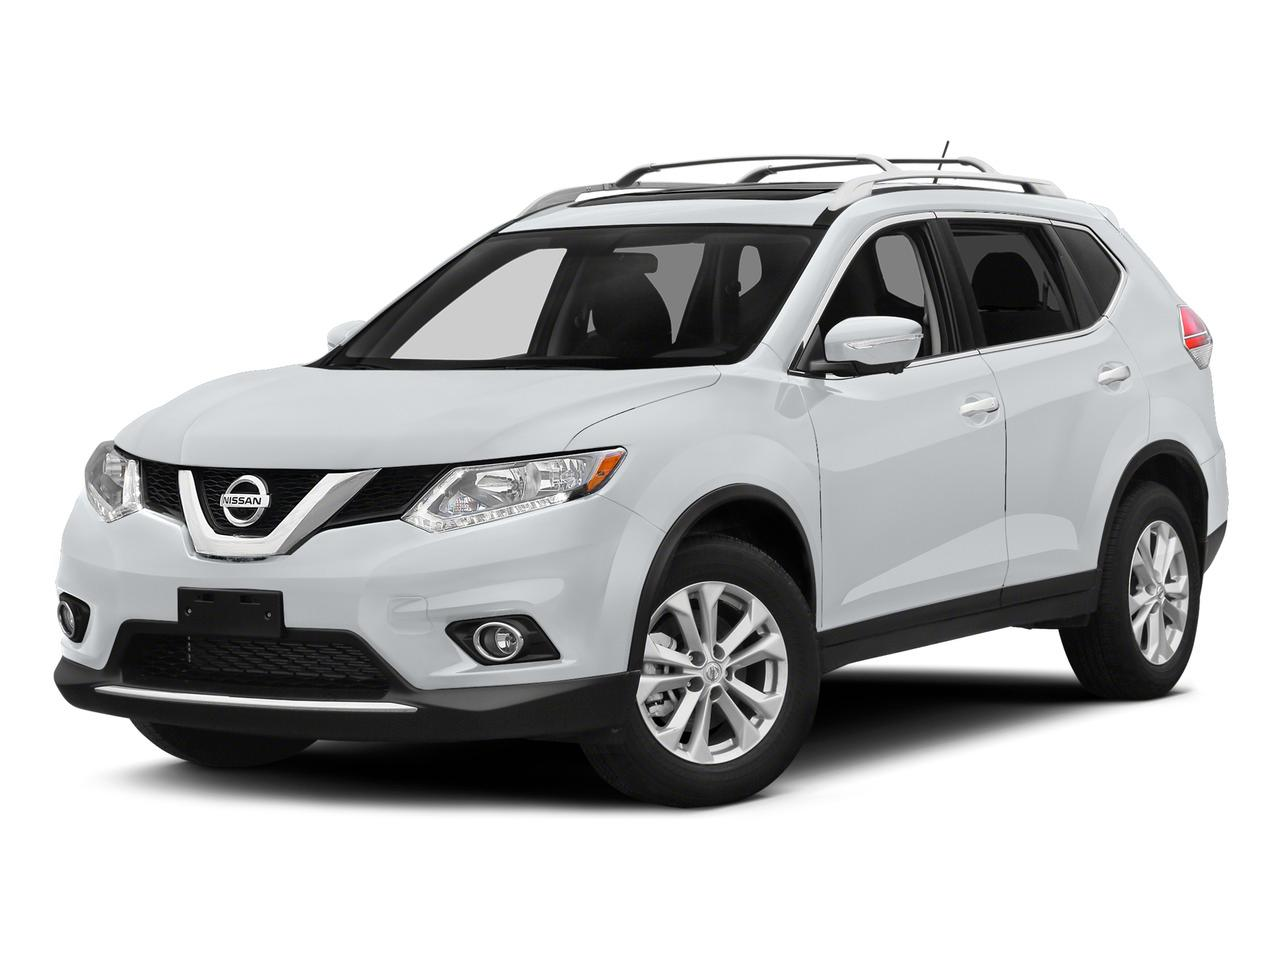 2015 Nissan Rogue Vehicle Photo in Quakertown, PA 18951